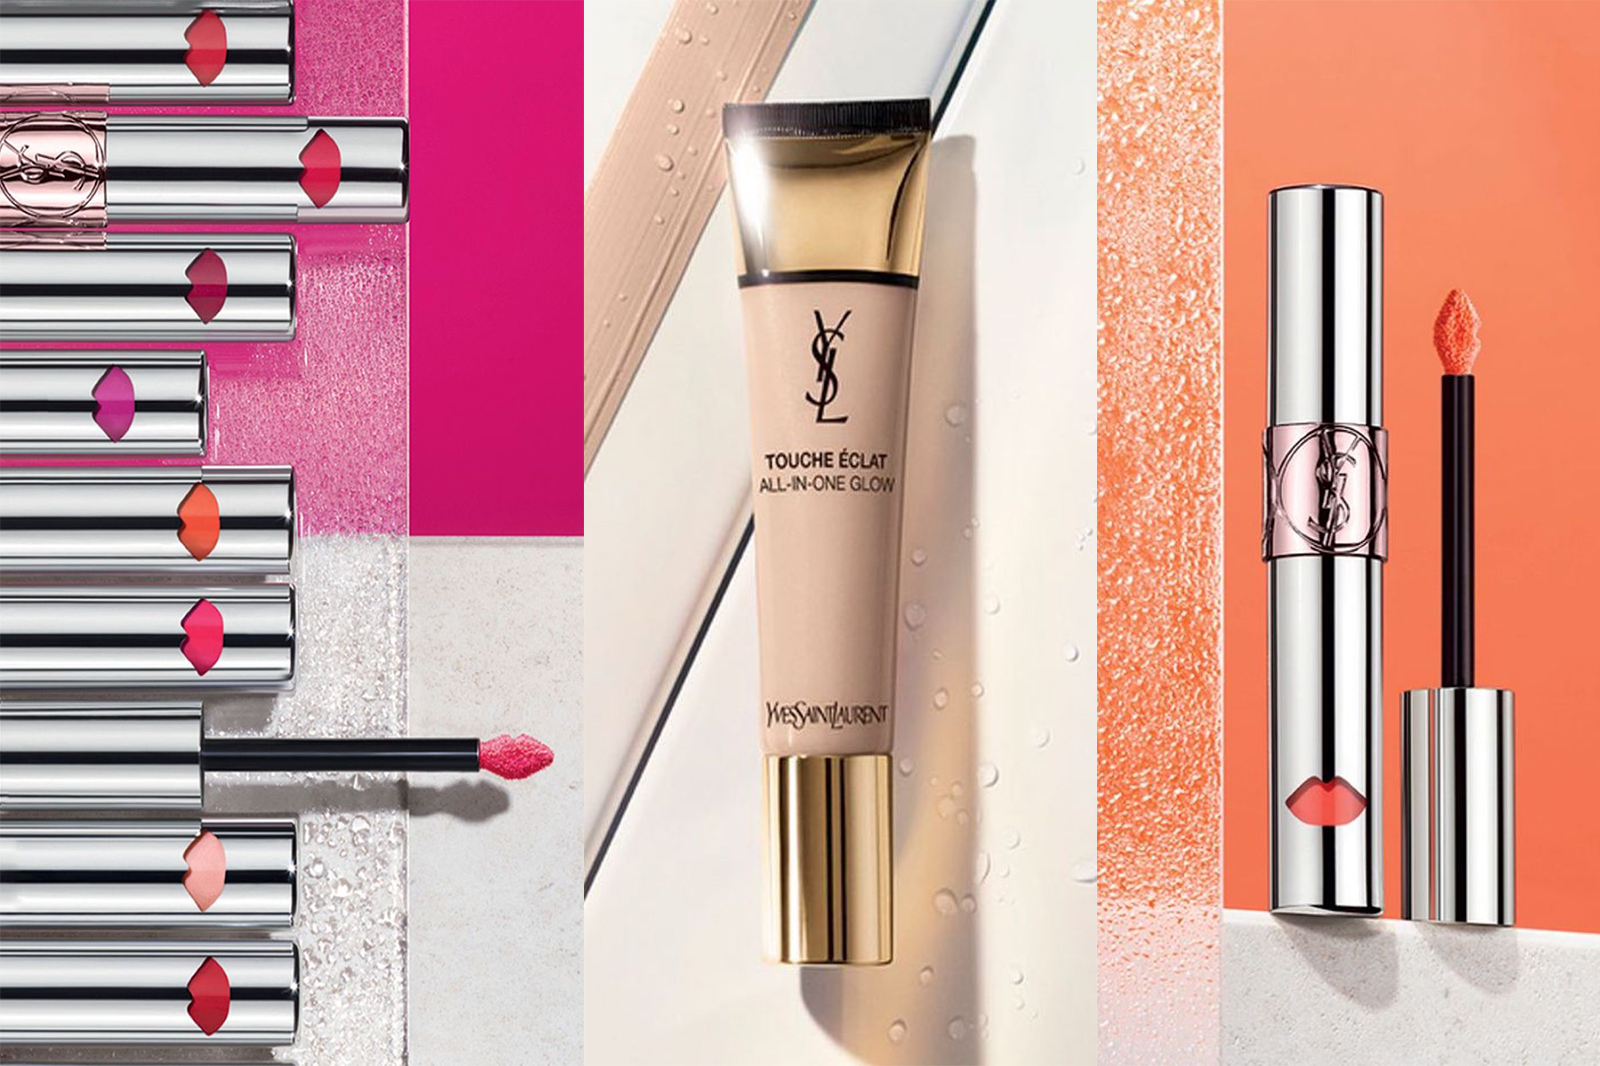 ysl nouveautés teint et lèvres printemps 2018 touche eclat water foundation all in one volupte colour balm